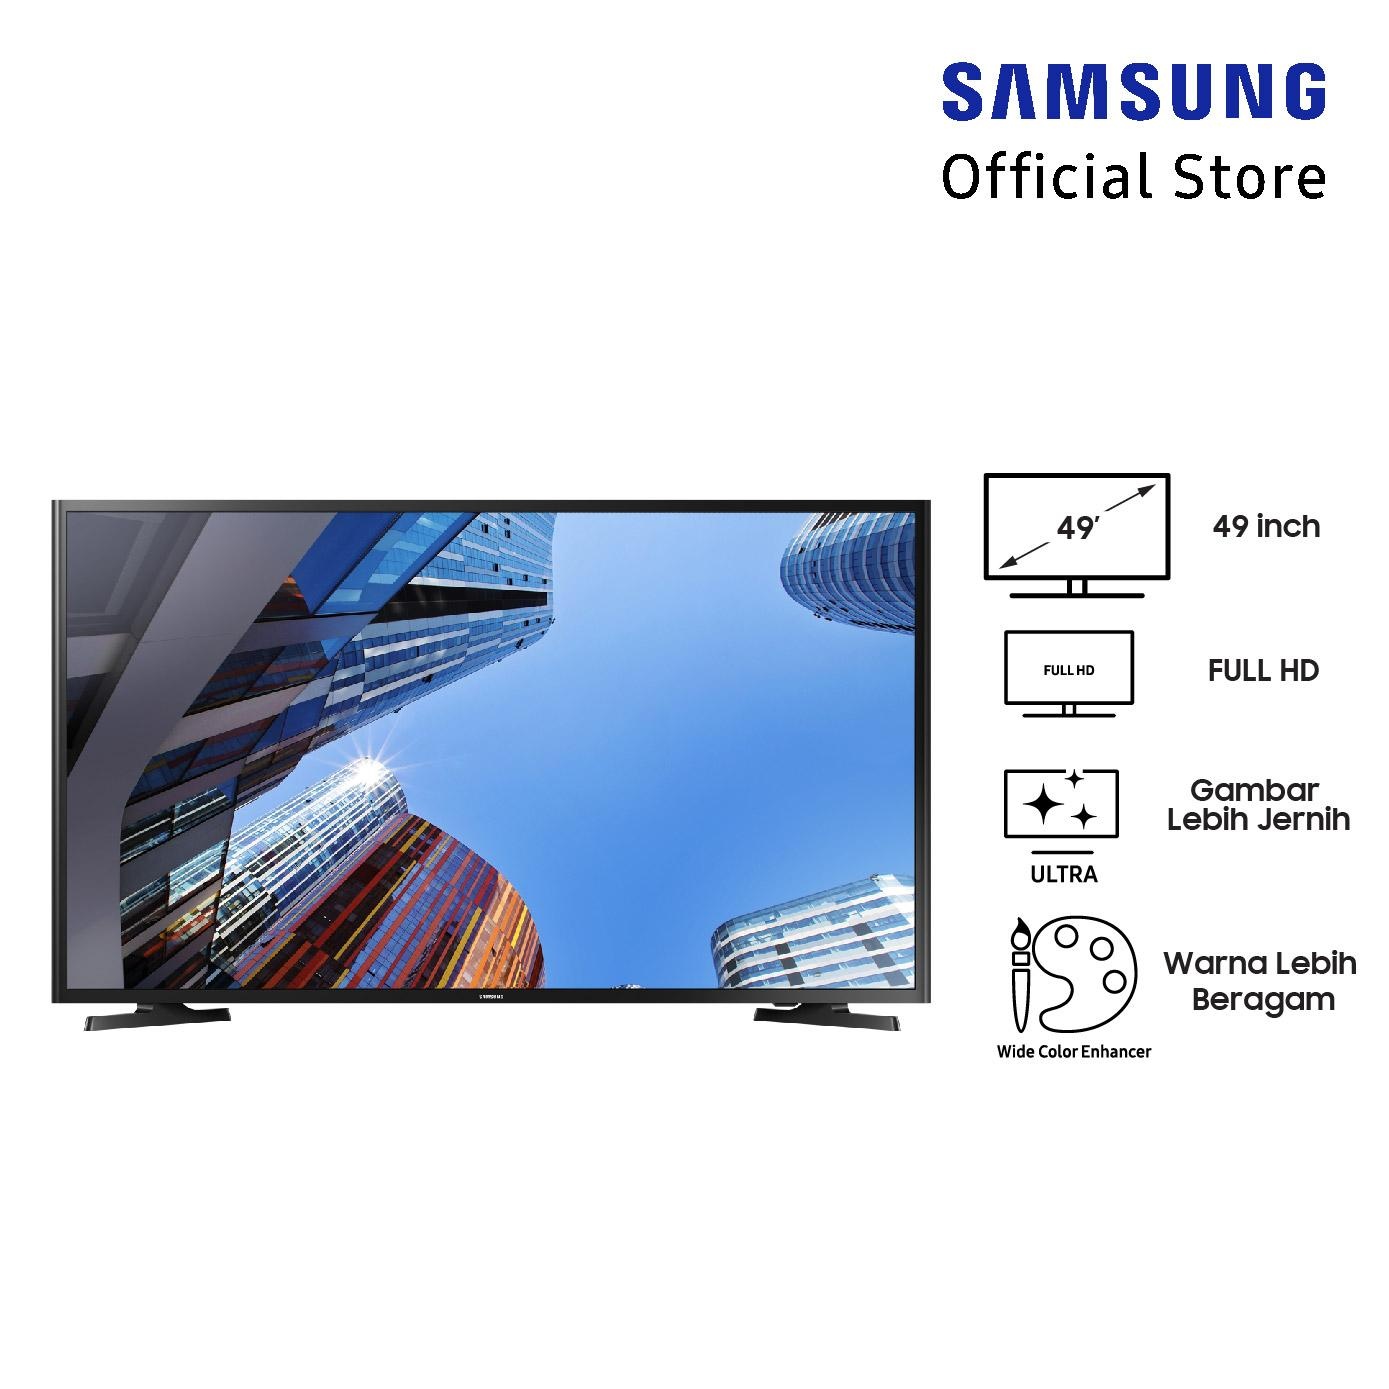 Samsung Full HD Smart TV 49